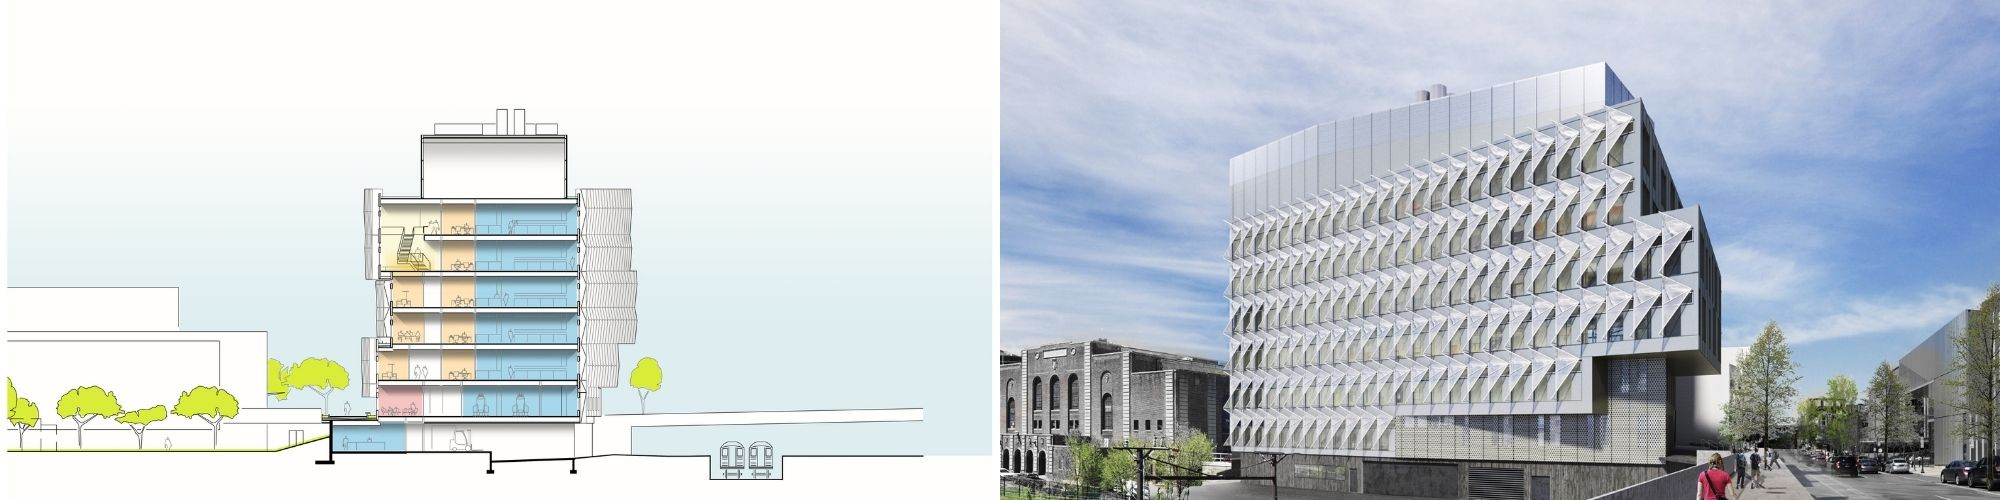 Side by side of architectural drawings of the new Vagelos building with interior and exterior views.